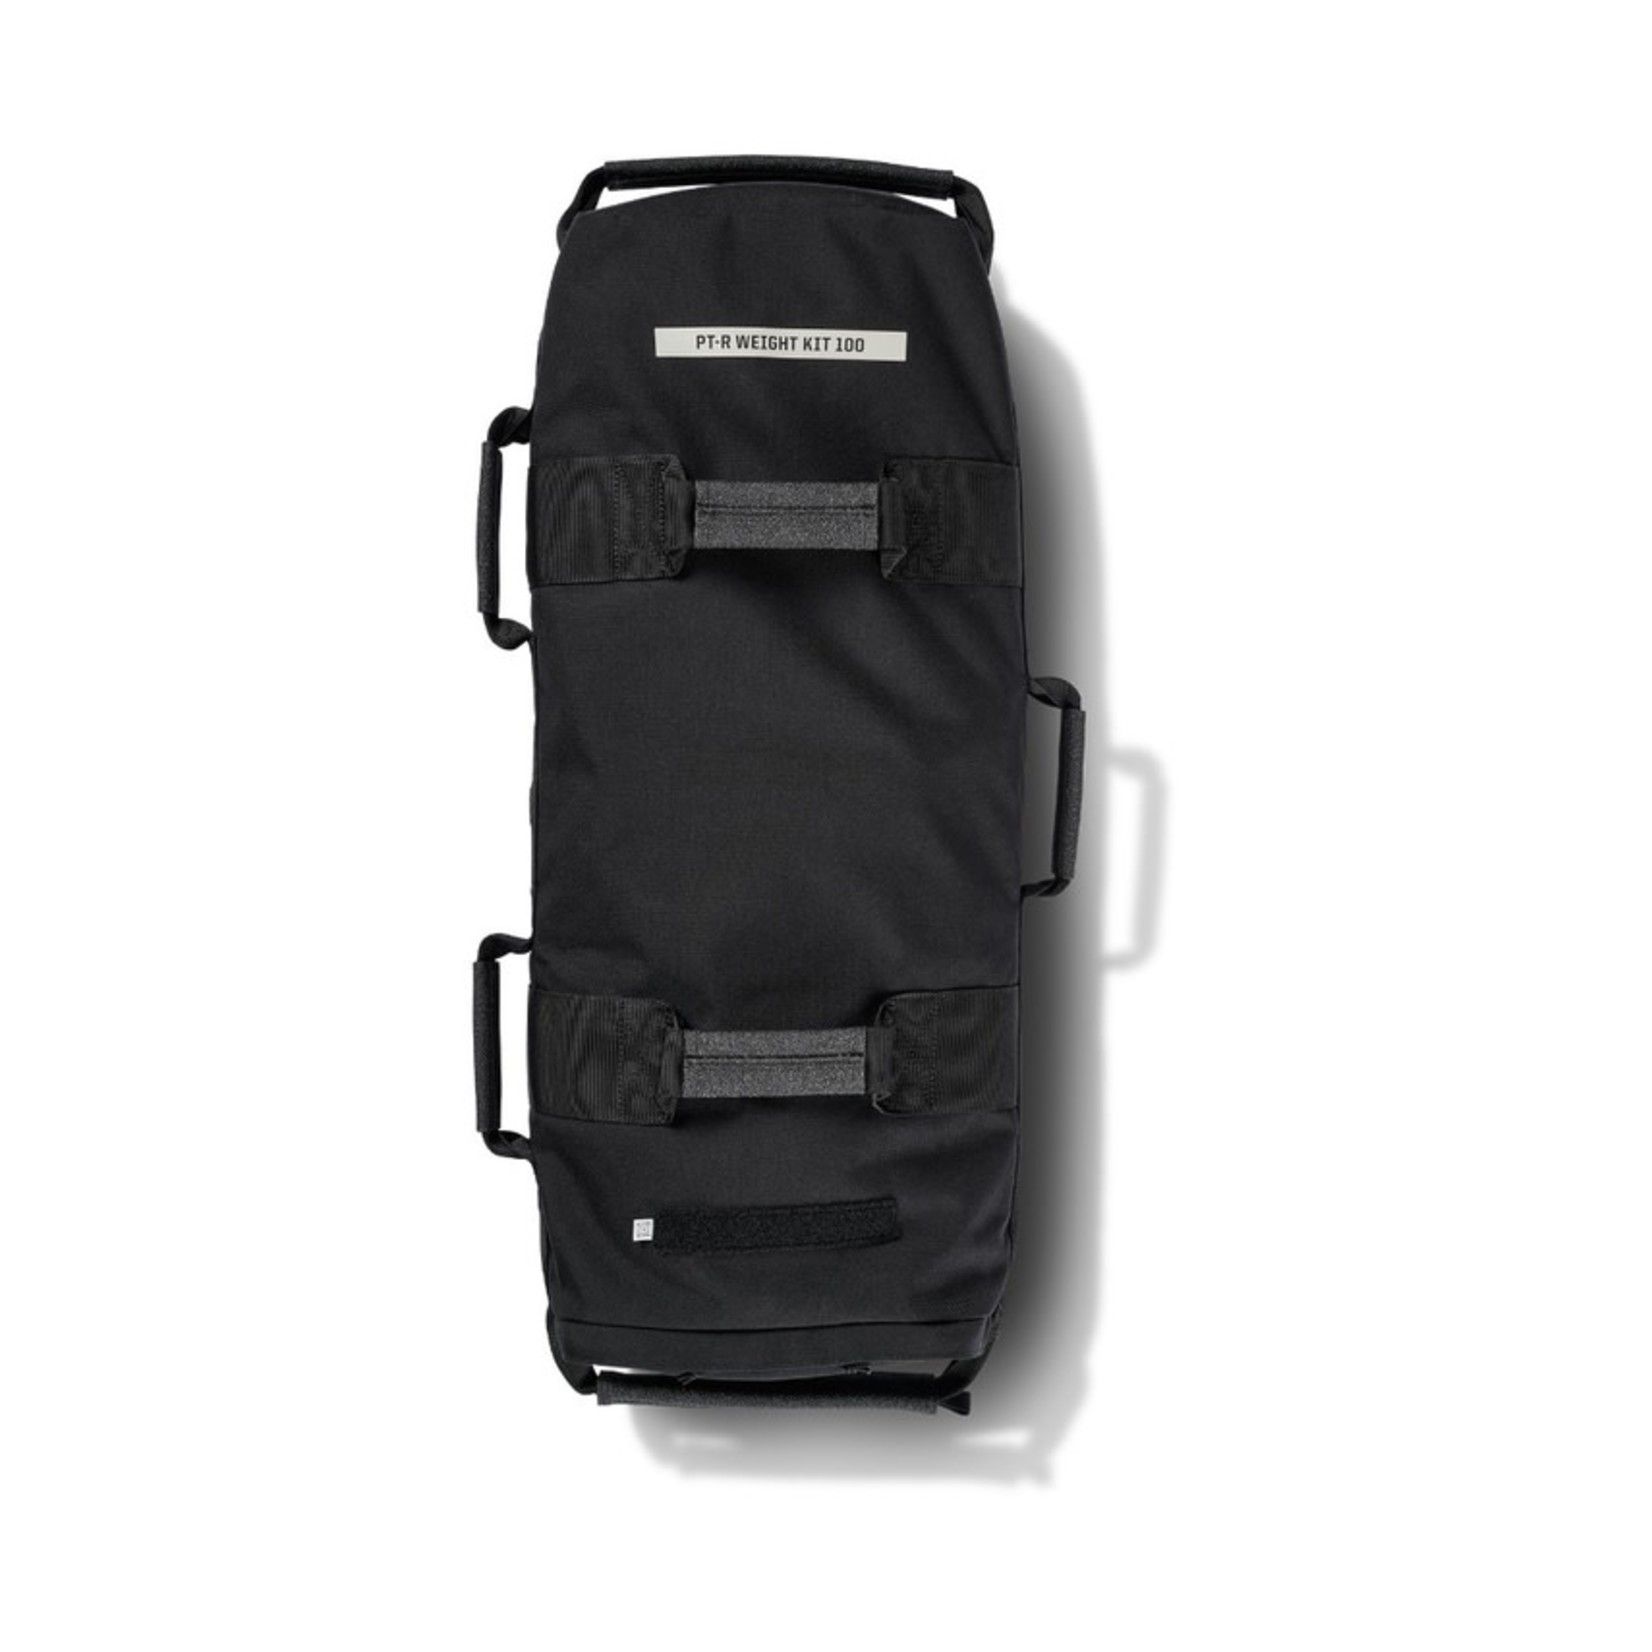 5.11 Tactical PT-R Weight Kit 100lbs